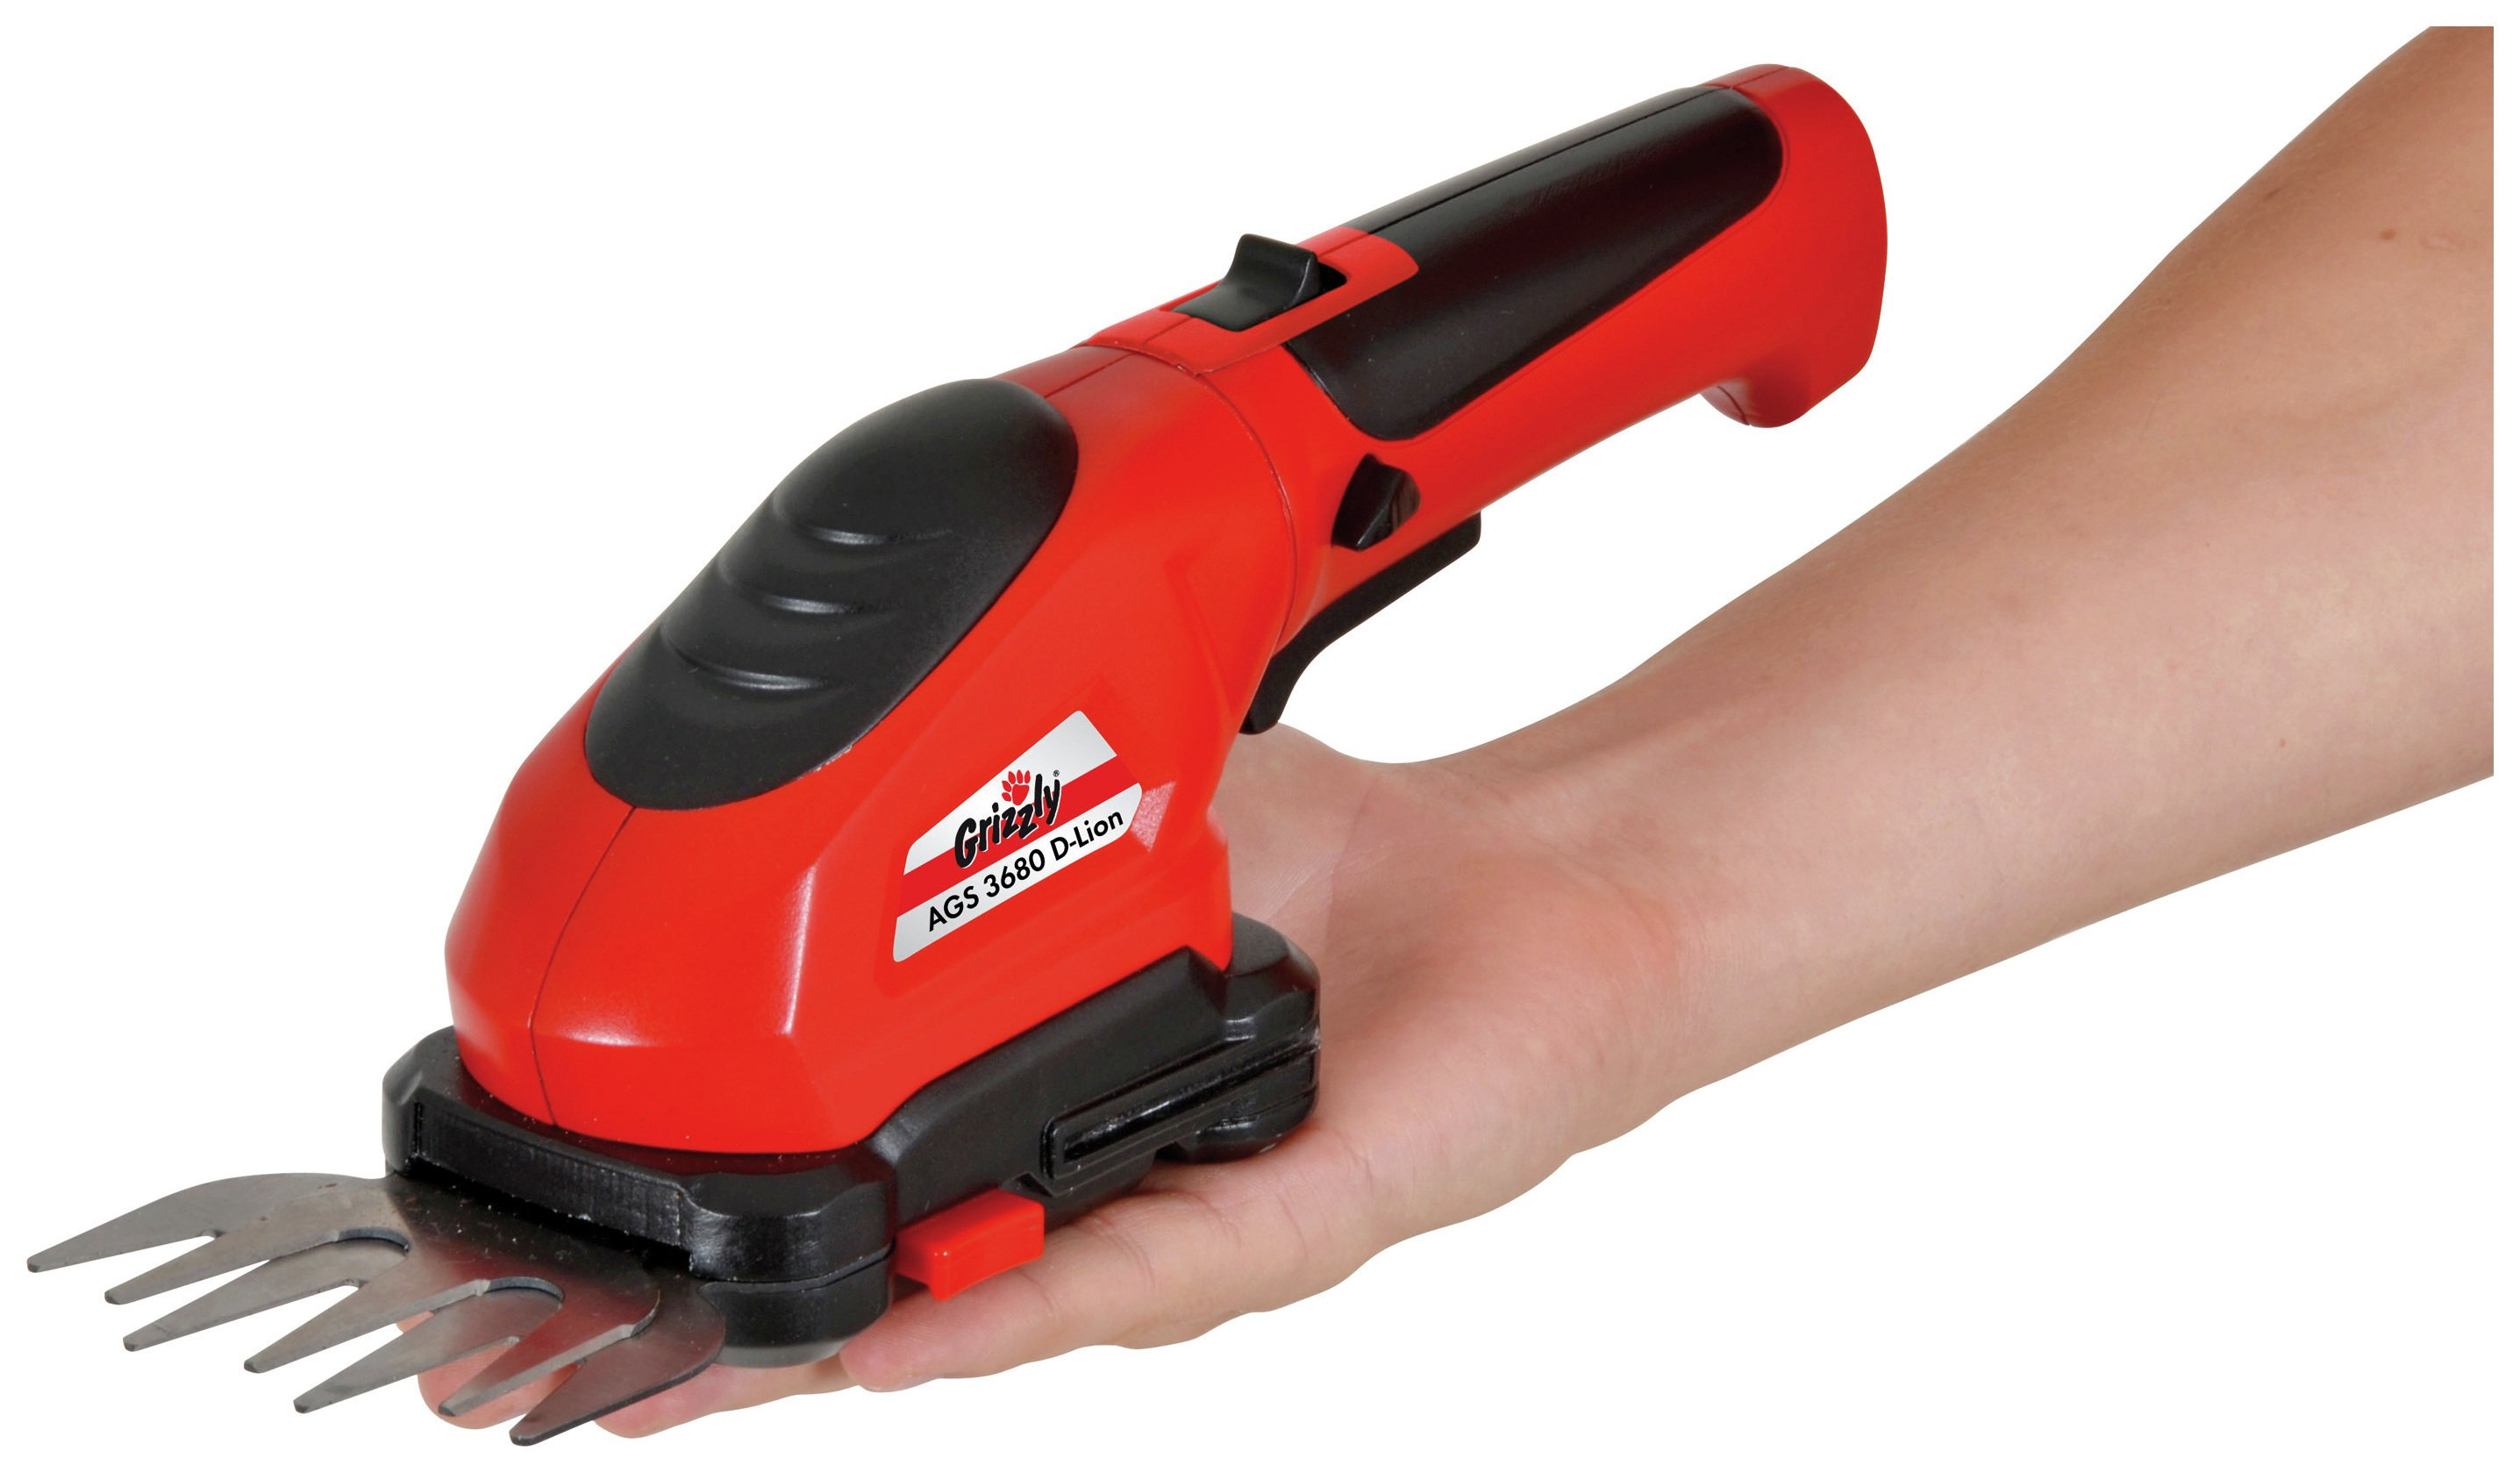 Image of Grizzly Tools 3.6V Cordless Hand Shear Set.